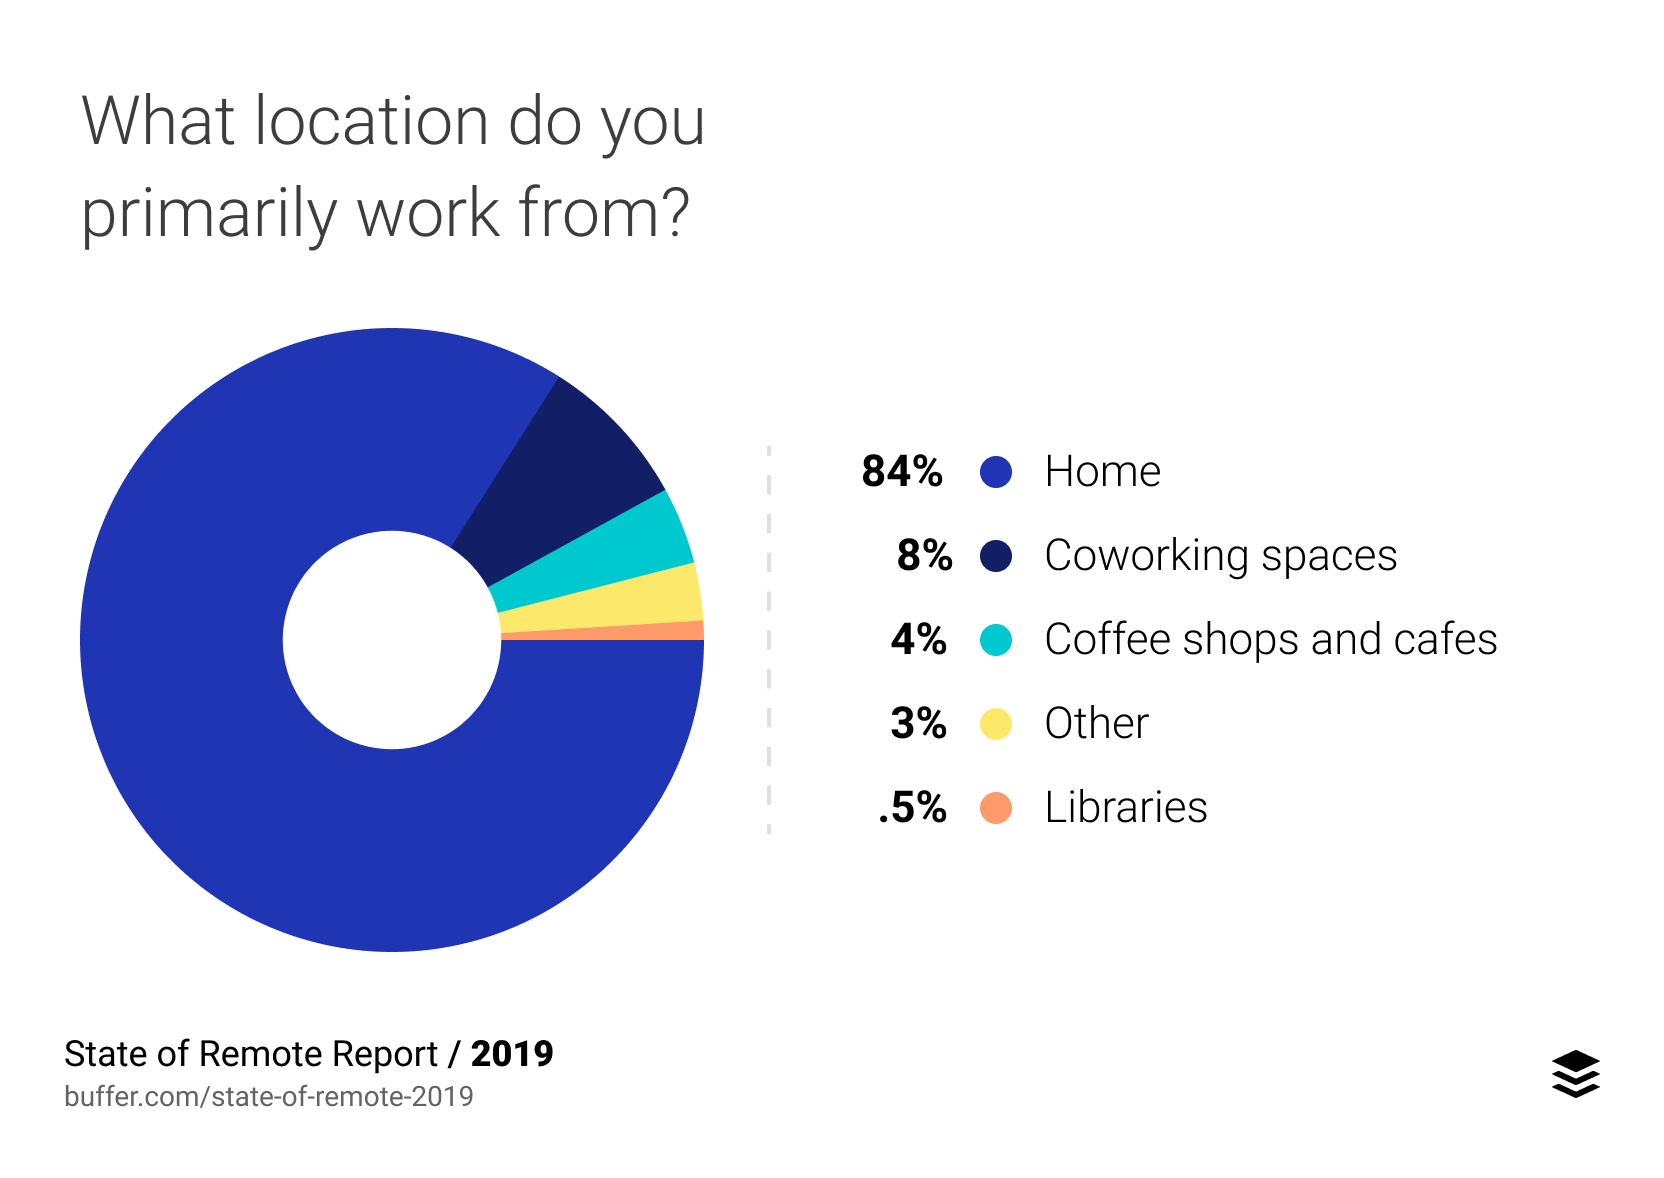 Chart showing the primary working location for remote workers